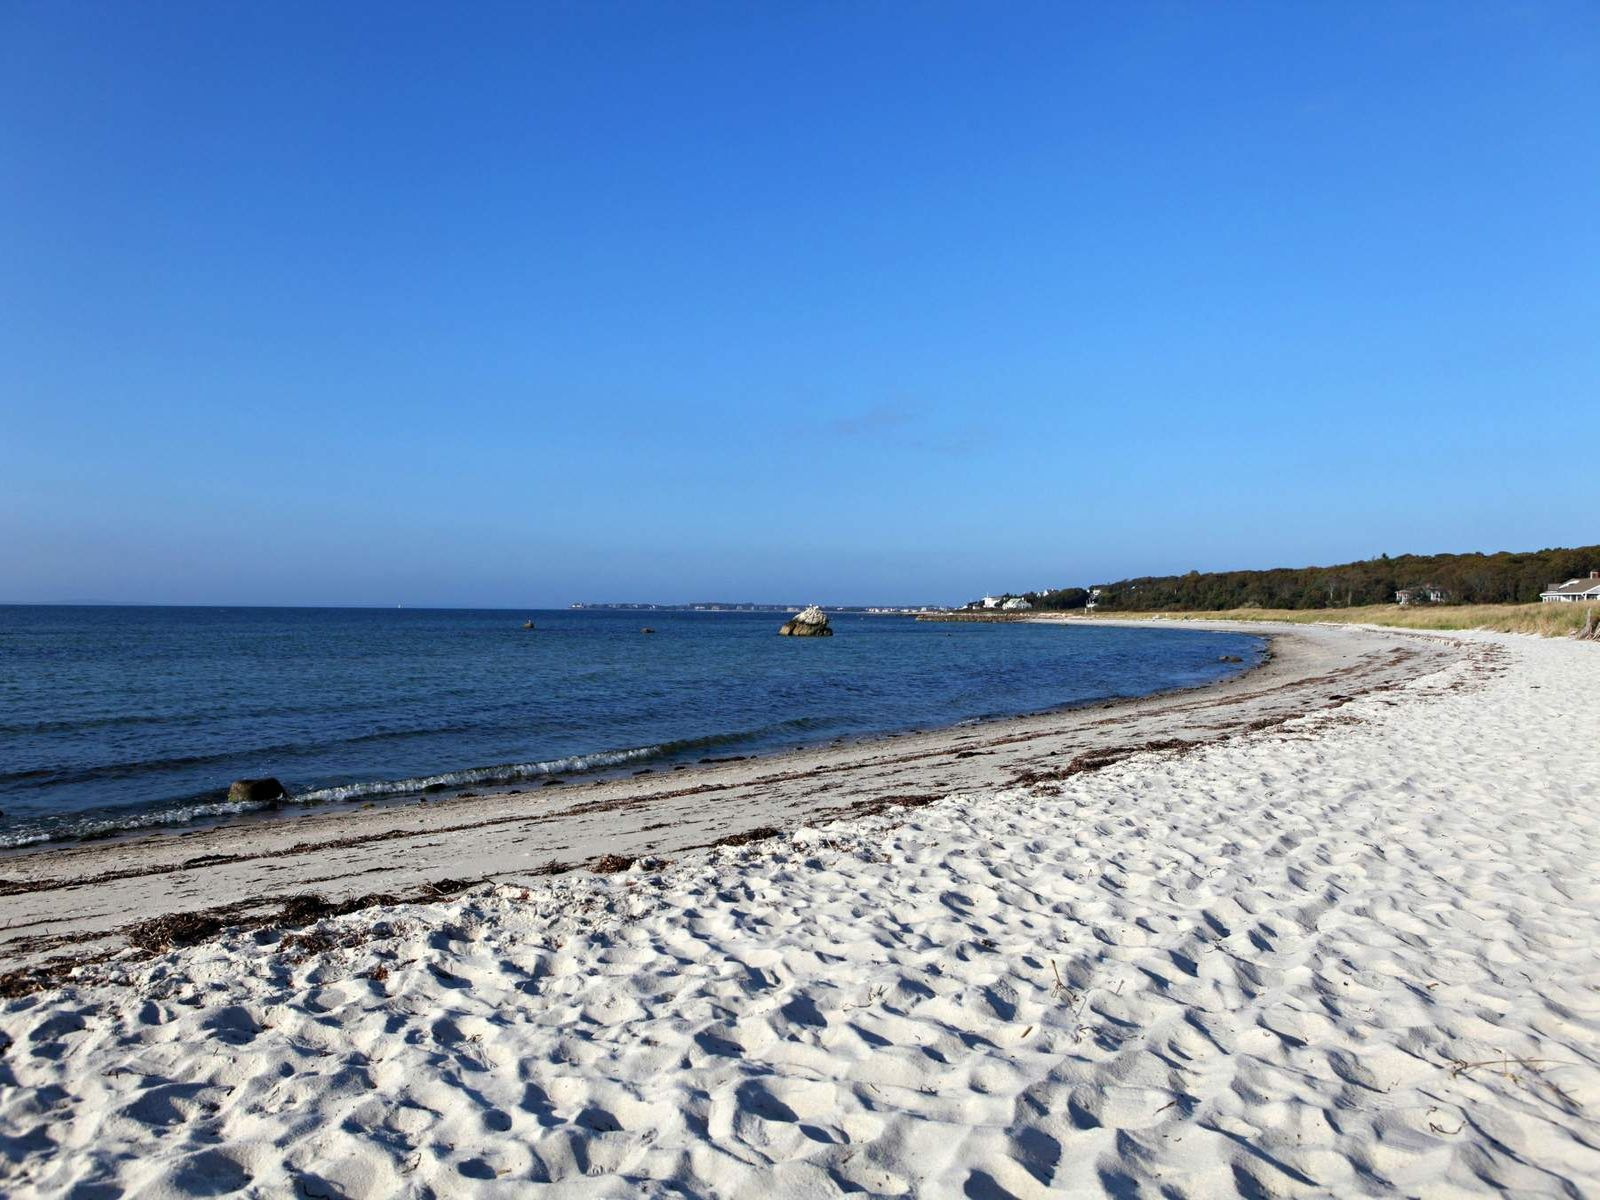 Seaside Community, West Falmouth MA Single Family Home - Cape Cod Real Estate